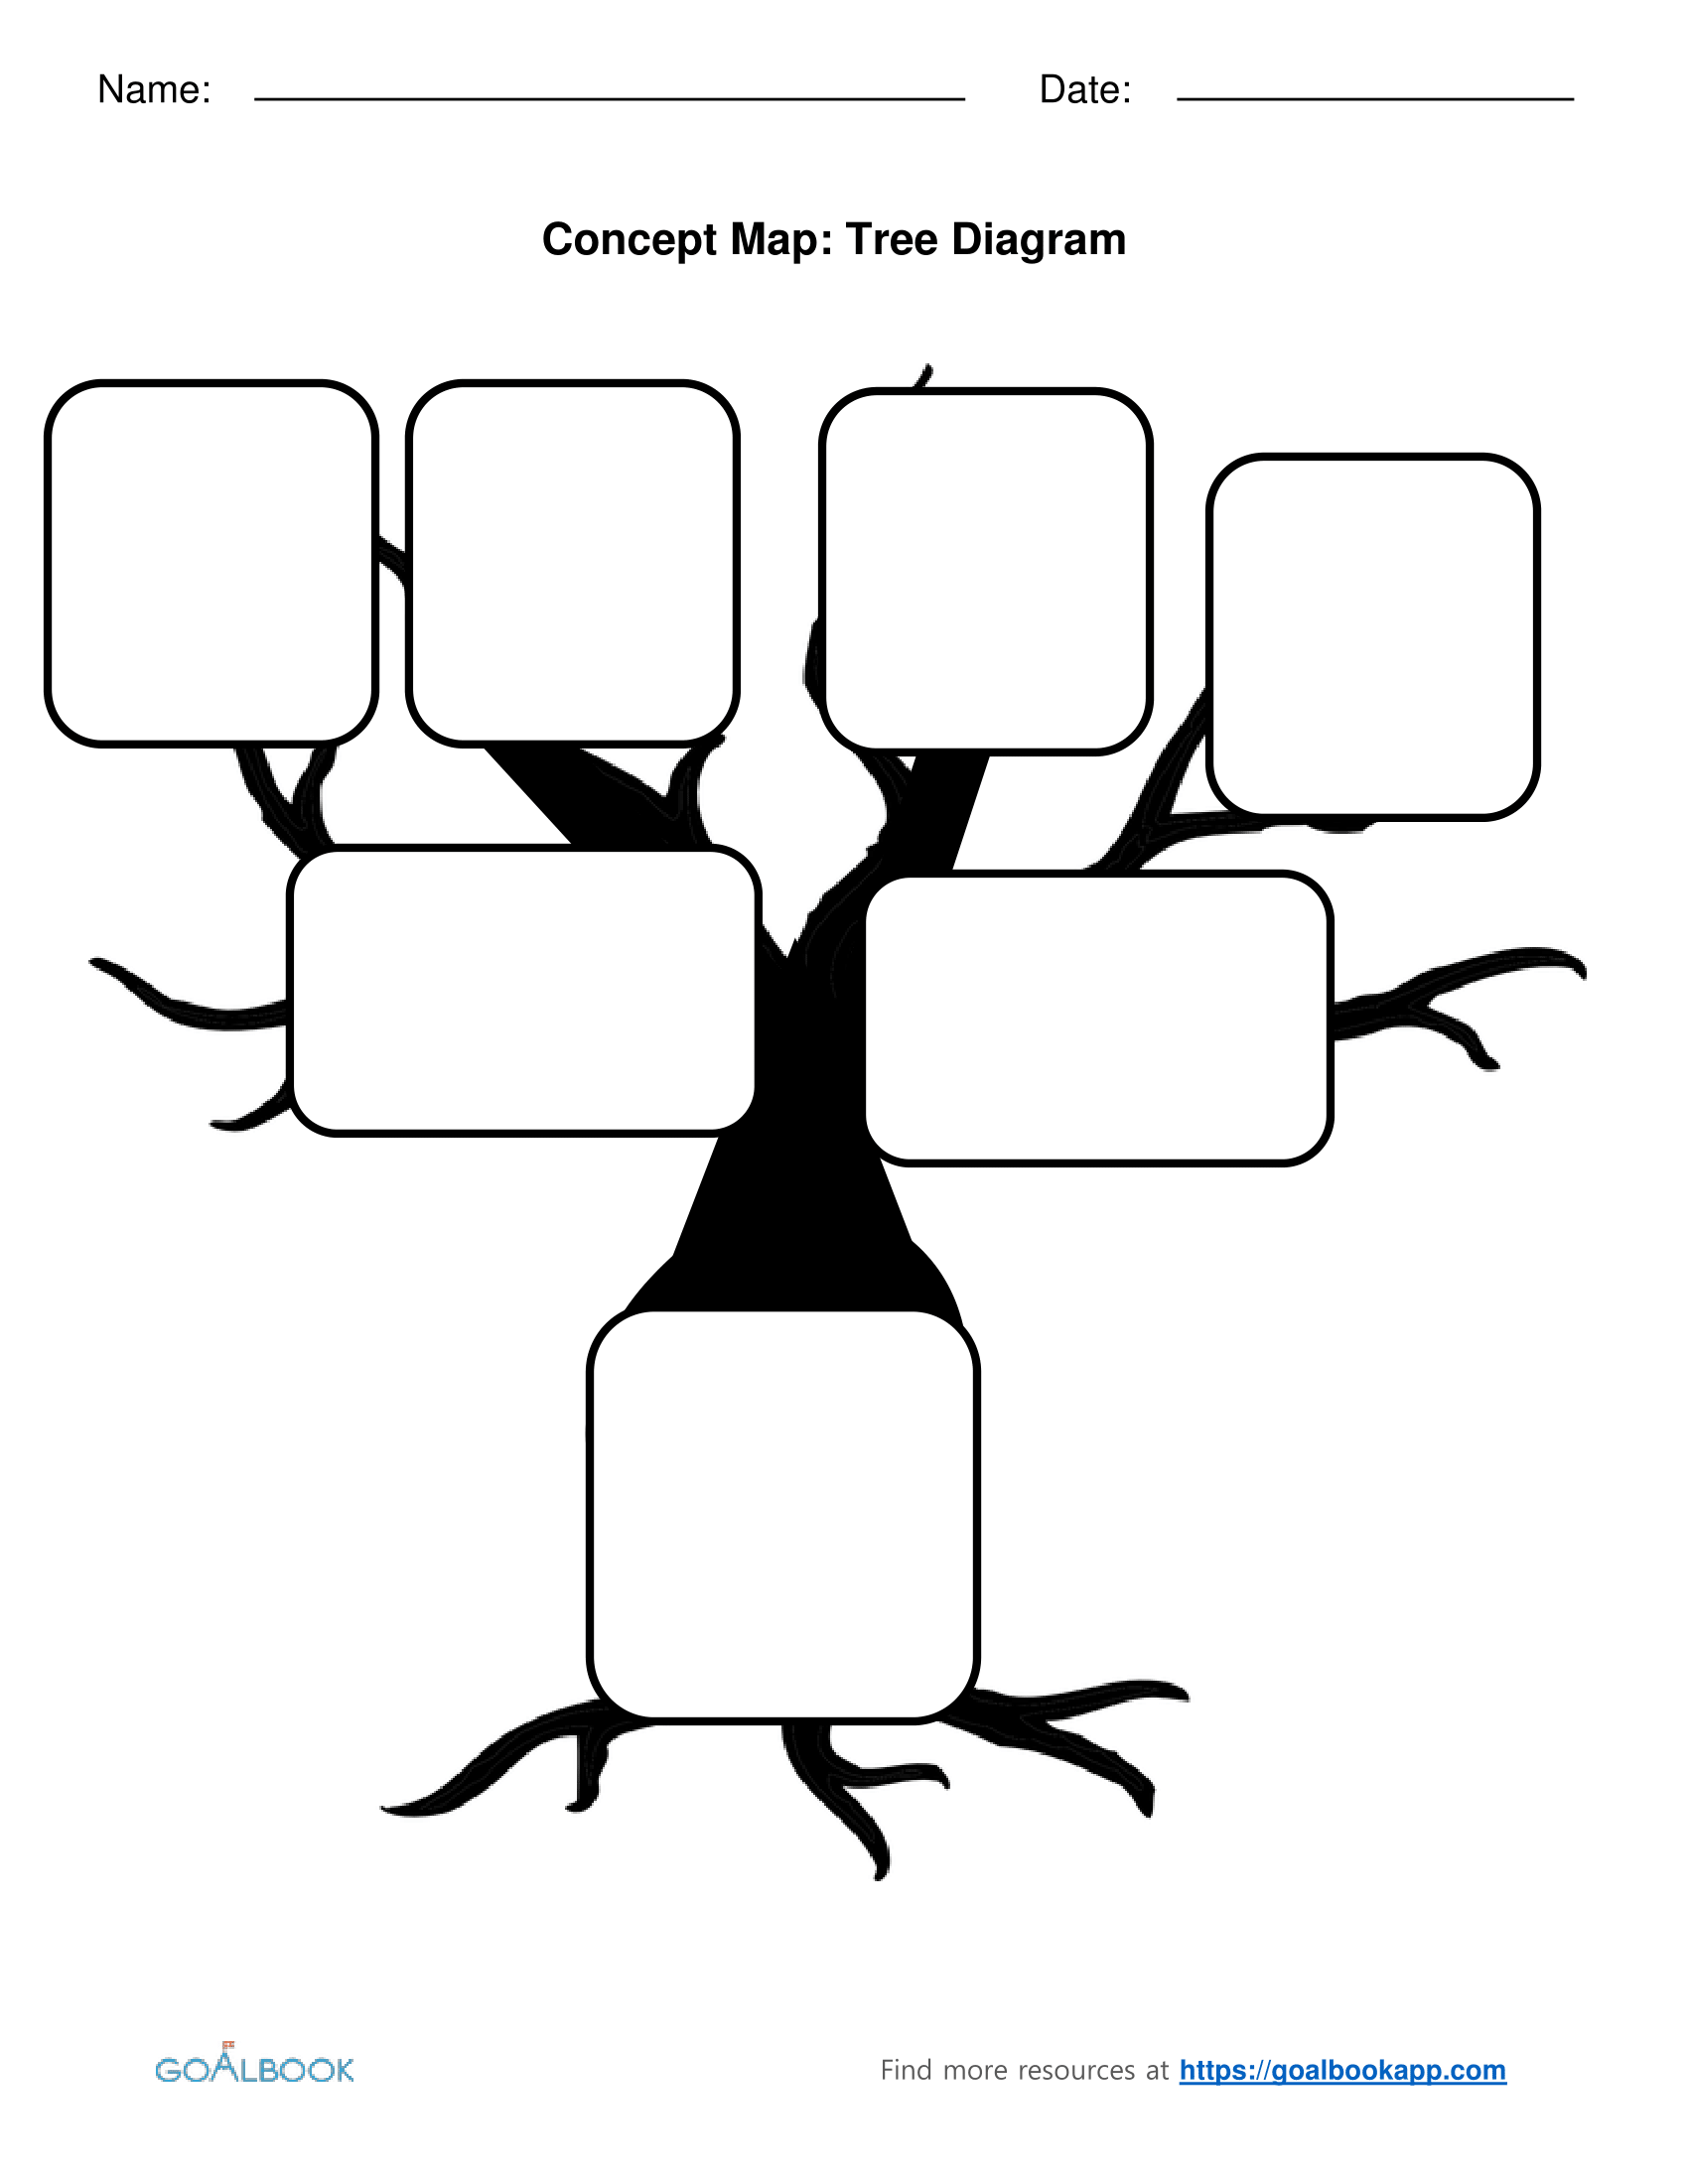 Tree Diagram: Concept Map